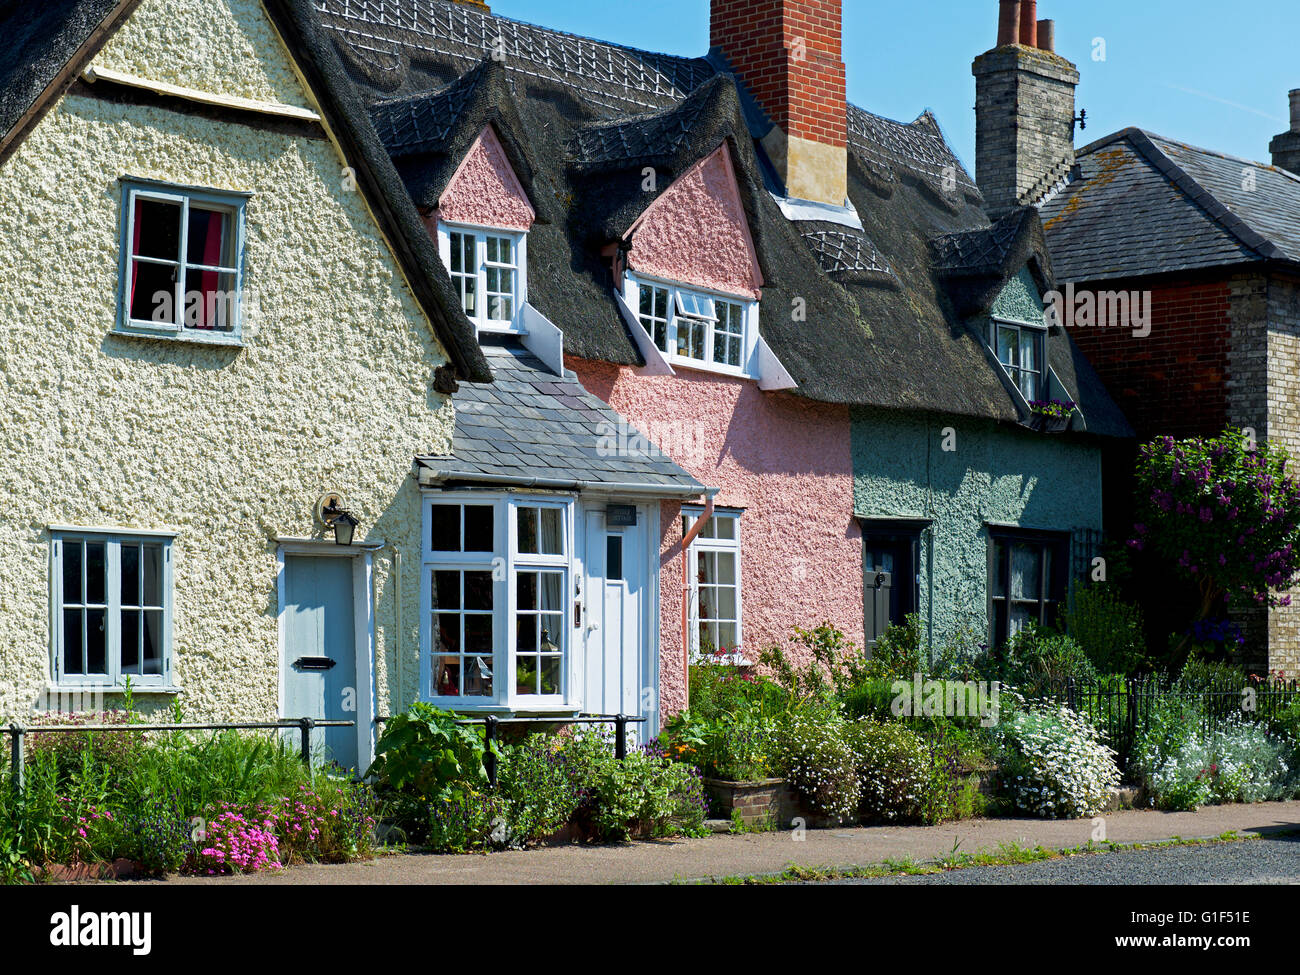 Cottages in the village of Cavendish, Suffolk, England UK - Stock Image